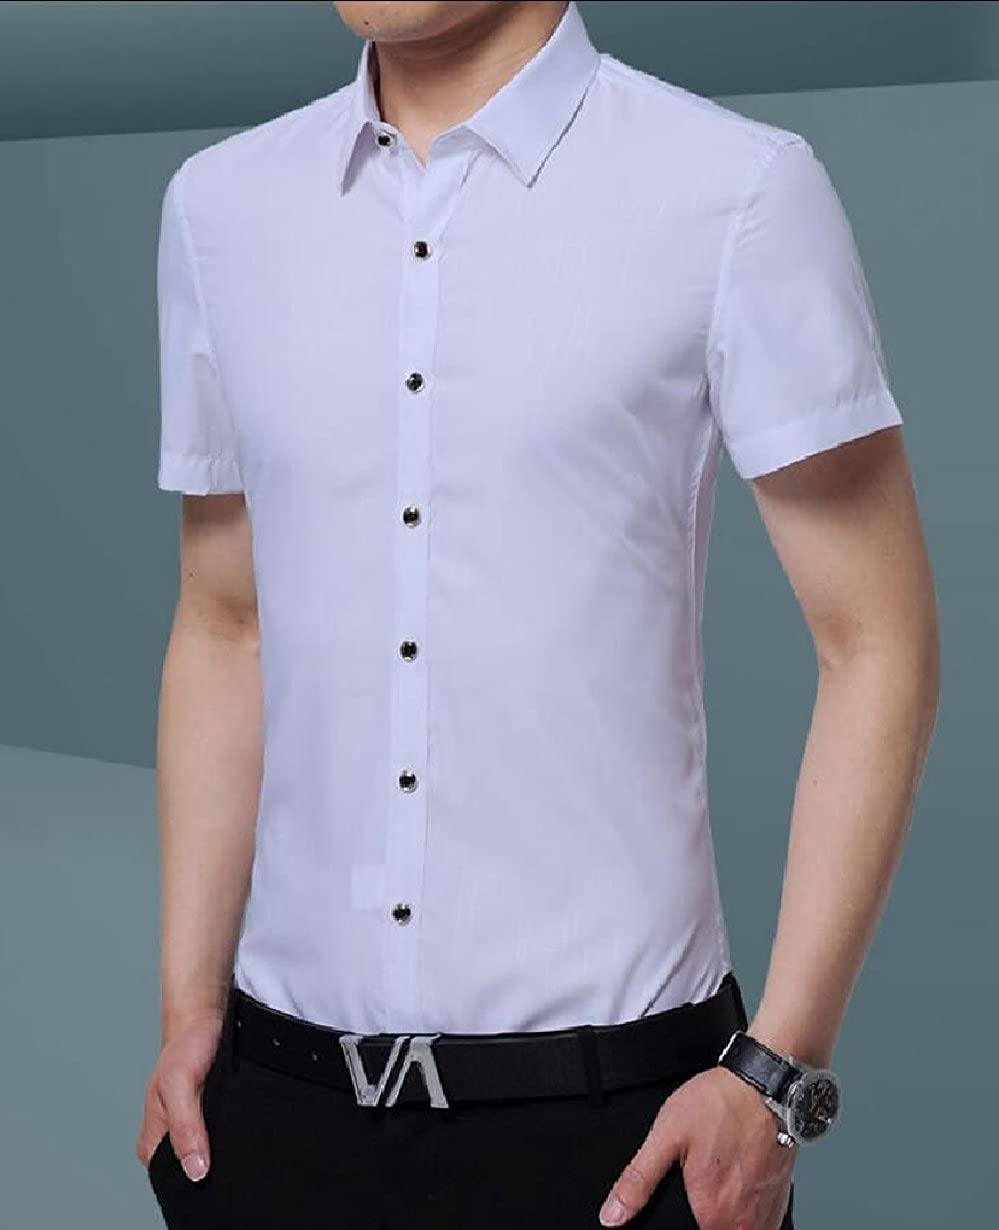 Keaac Mens Casual Slim Fit Dress Shirts Short Sleeve Button Down Shirt Top